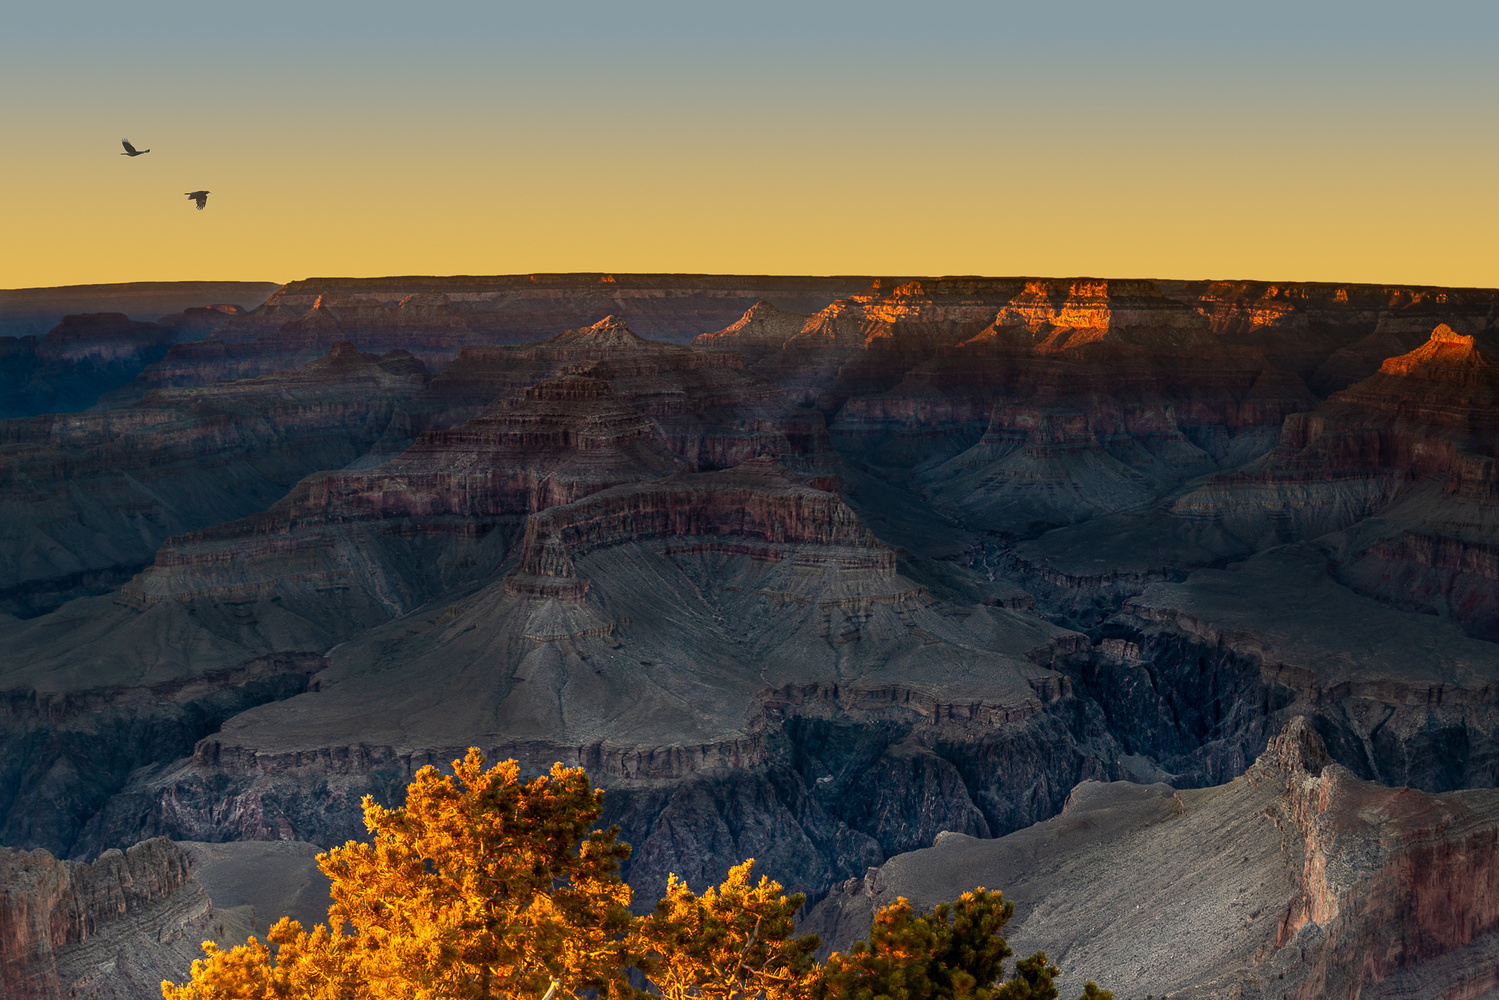 Winter Sunset at the Grand Canyon by Mariano de Miguel